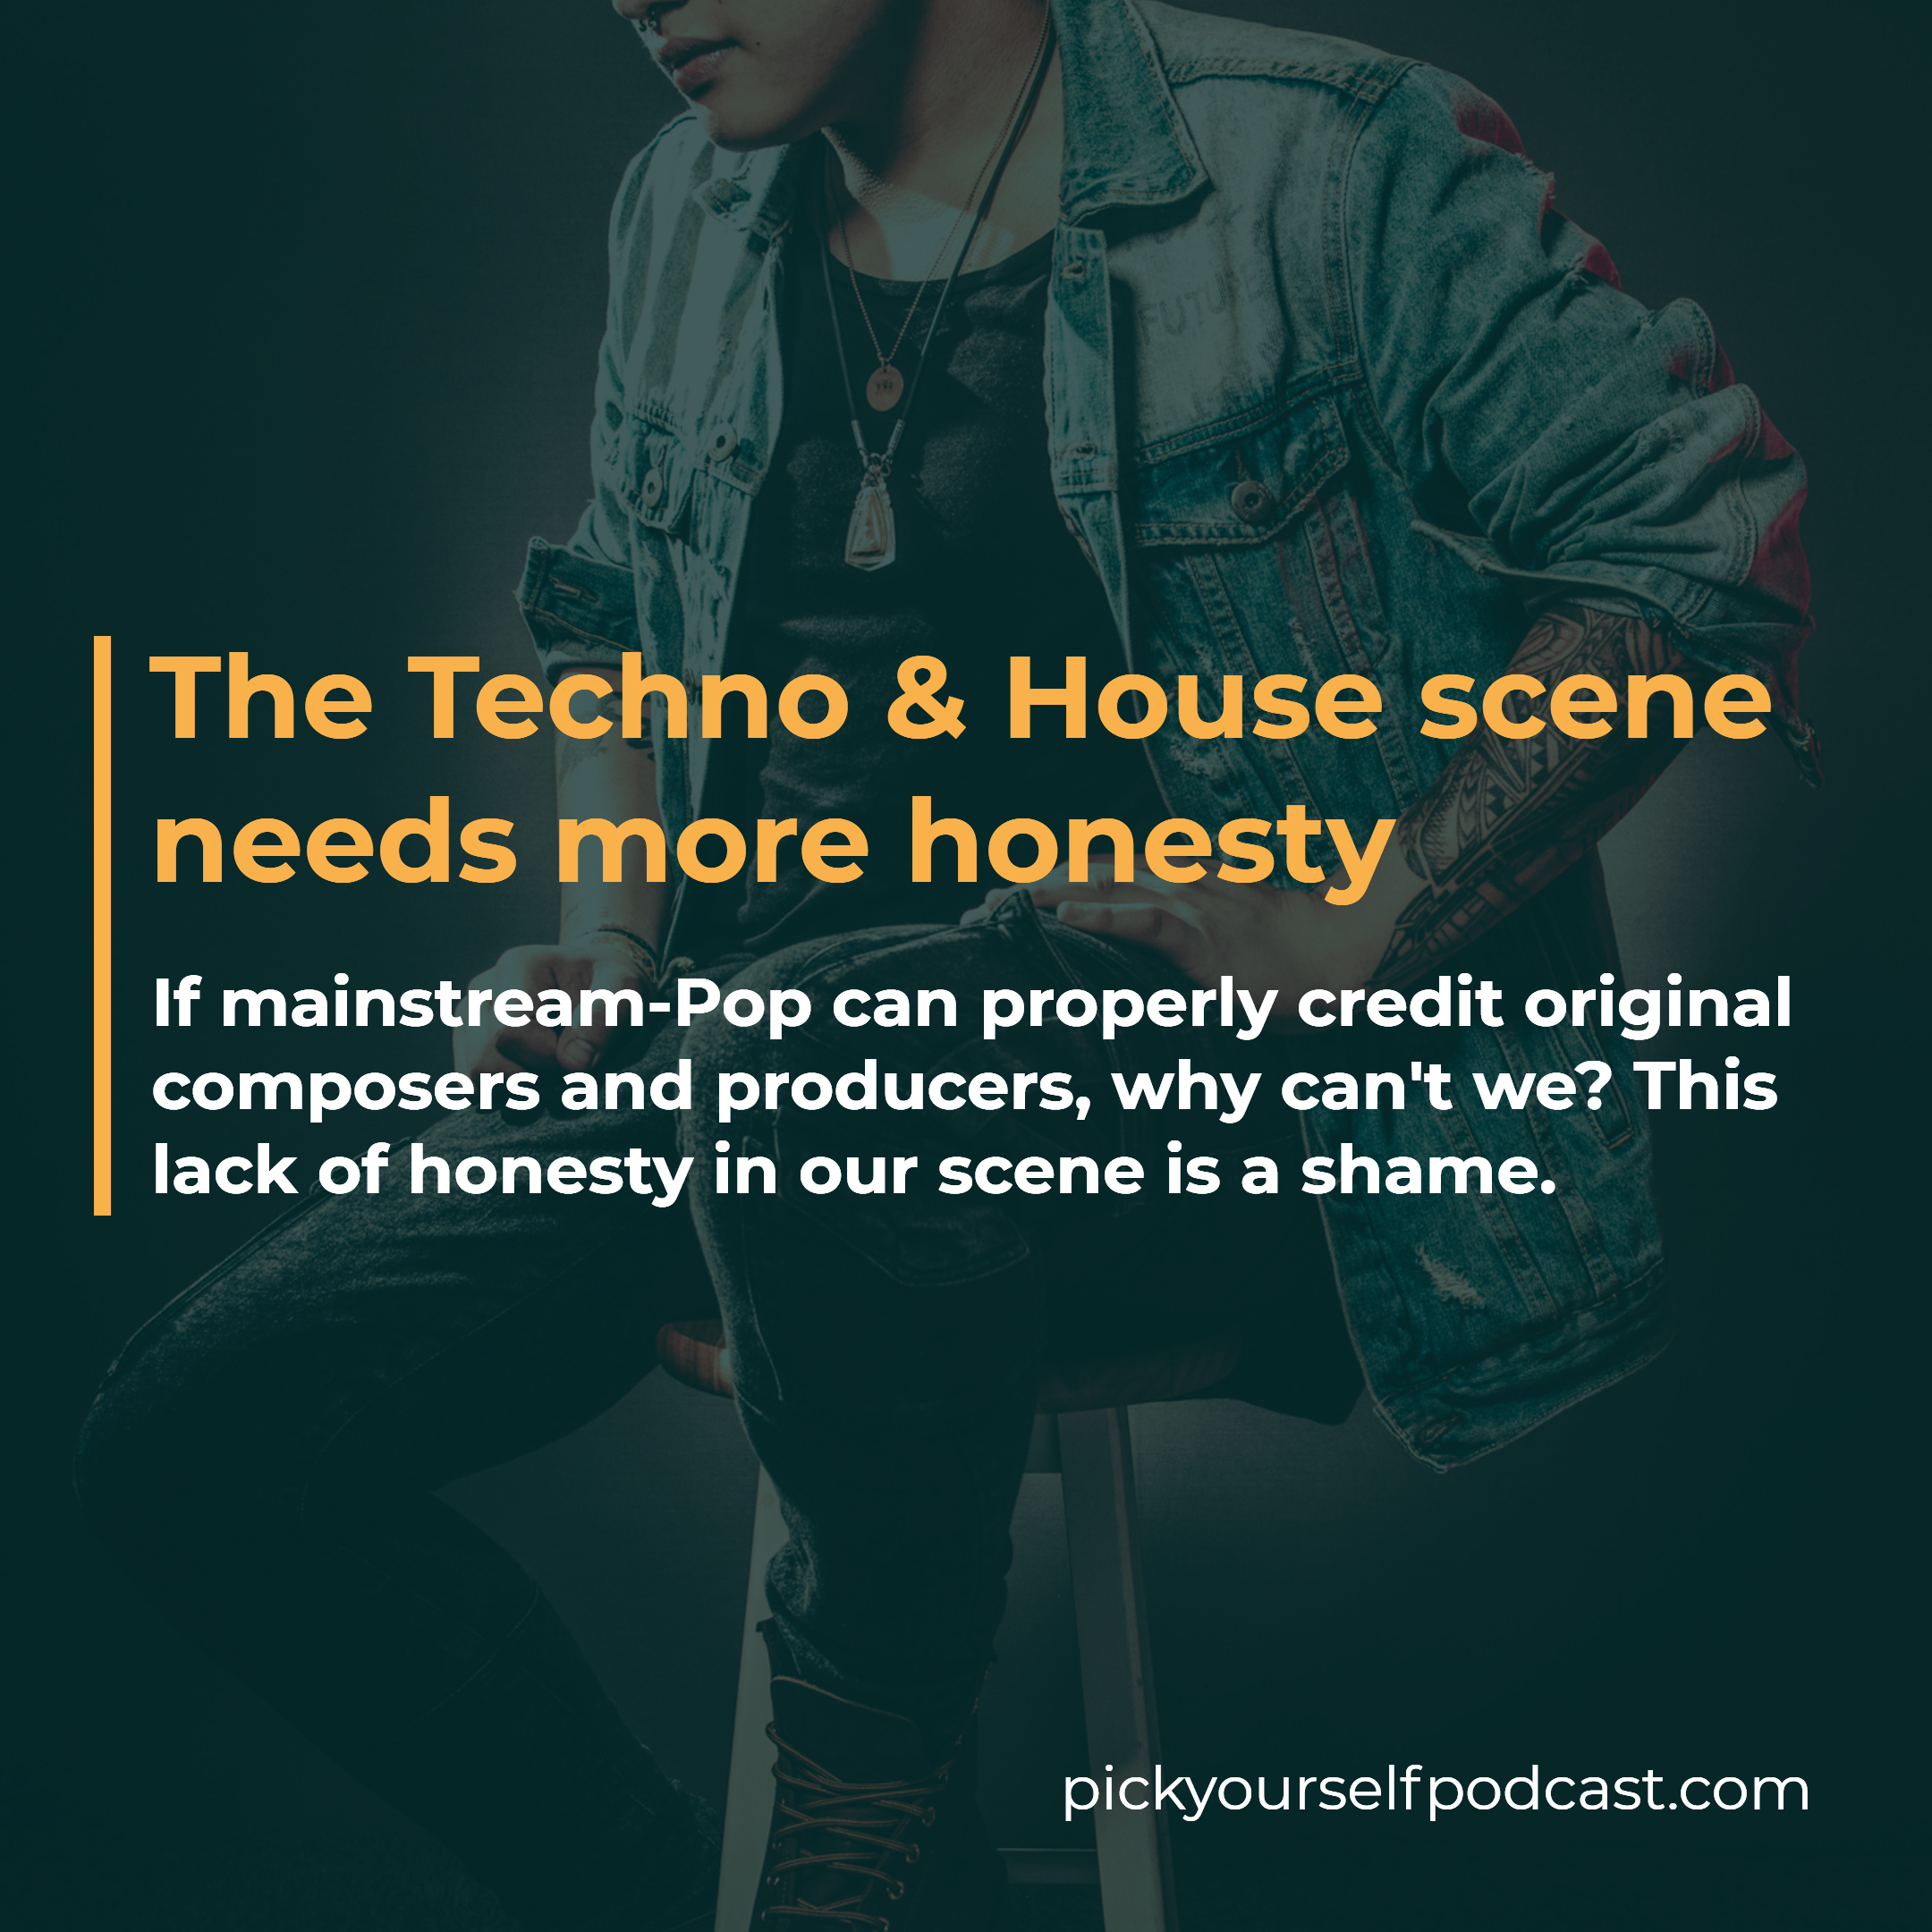 The Techno and House scene needs more honesty. Ghost-producing means no credit. We can learn from mainstream Pop here.